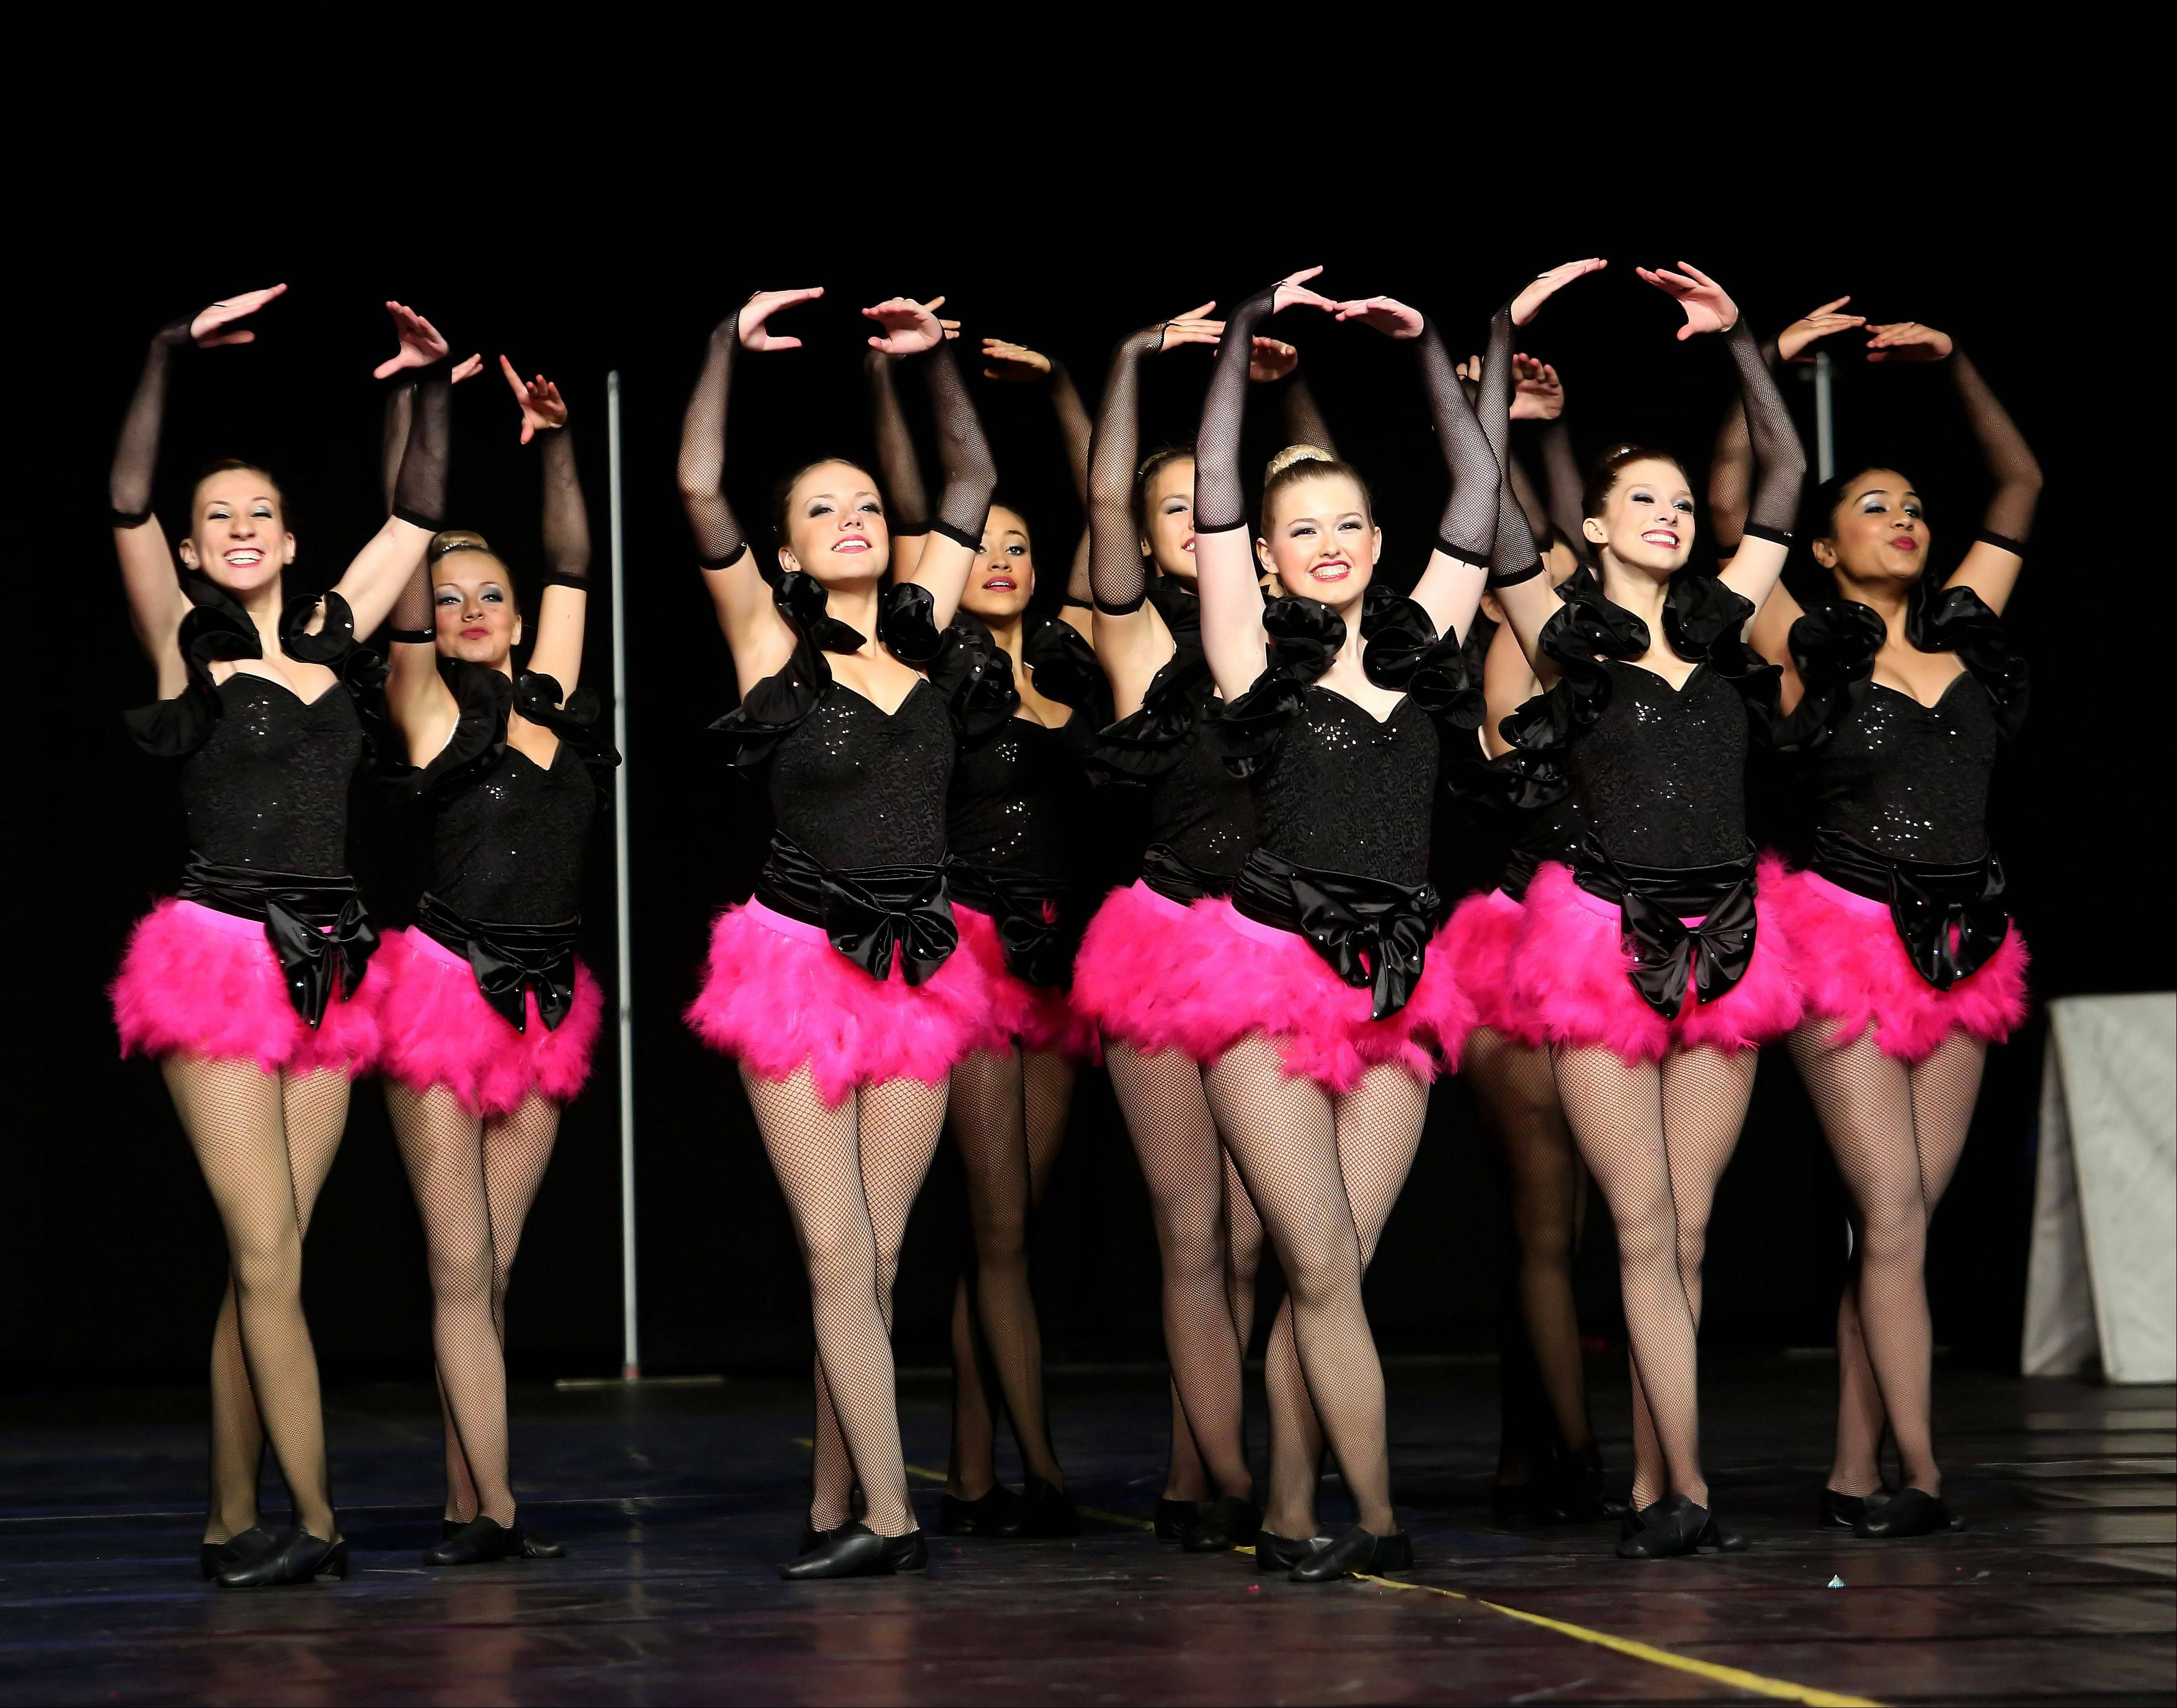 Waubonsie Valley High School performs in the 3A division of the Competitive Dance State Preliminaries on Friday in Bloomington.